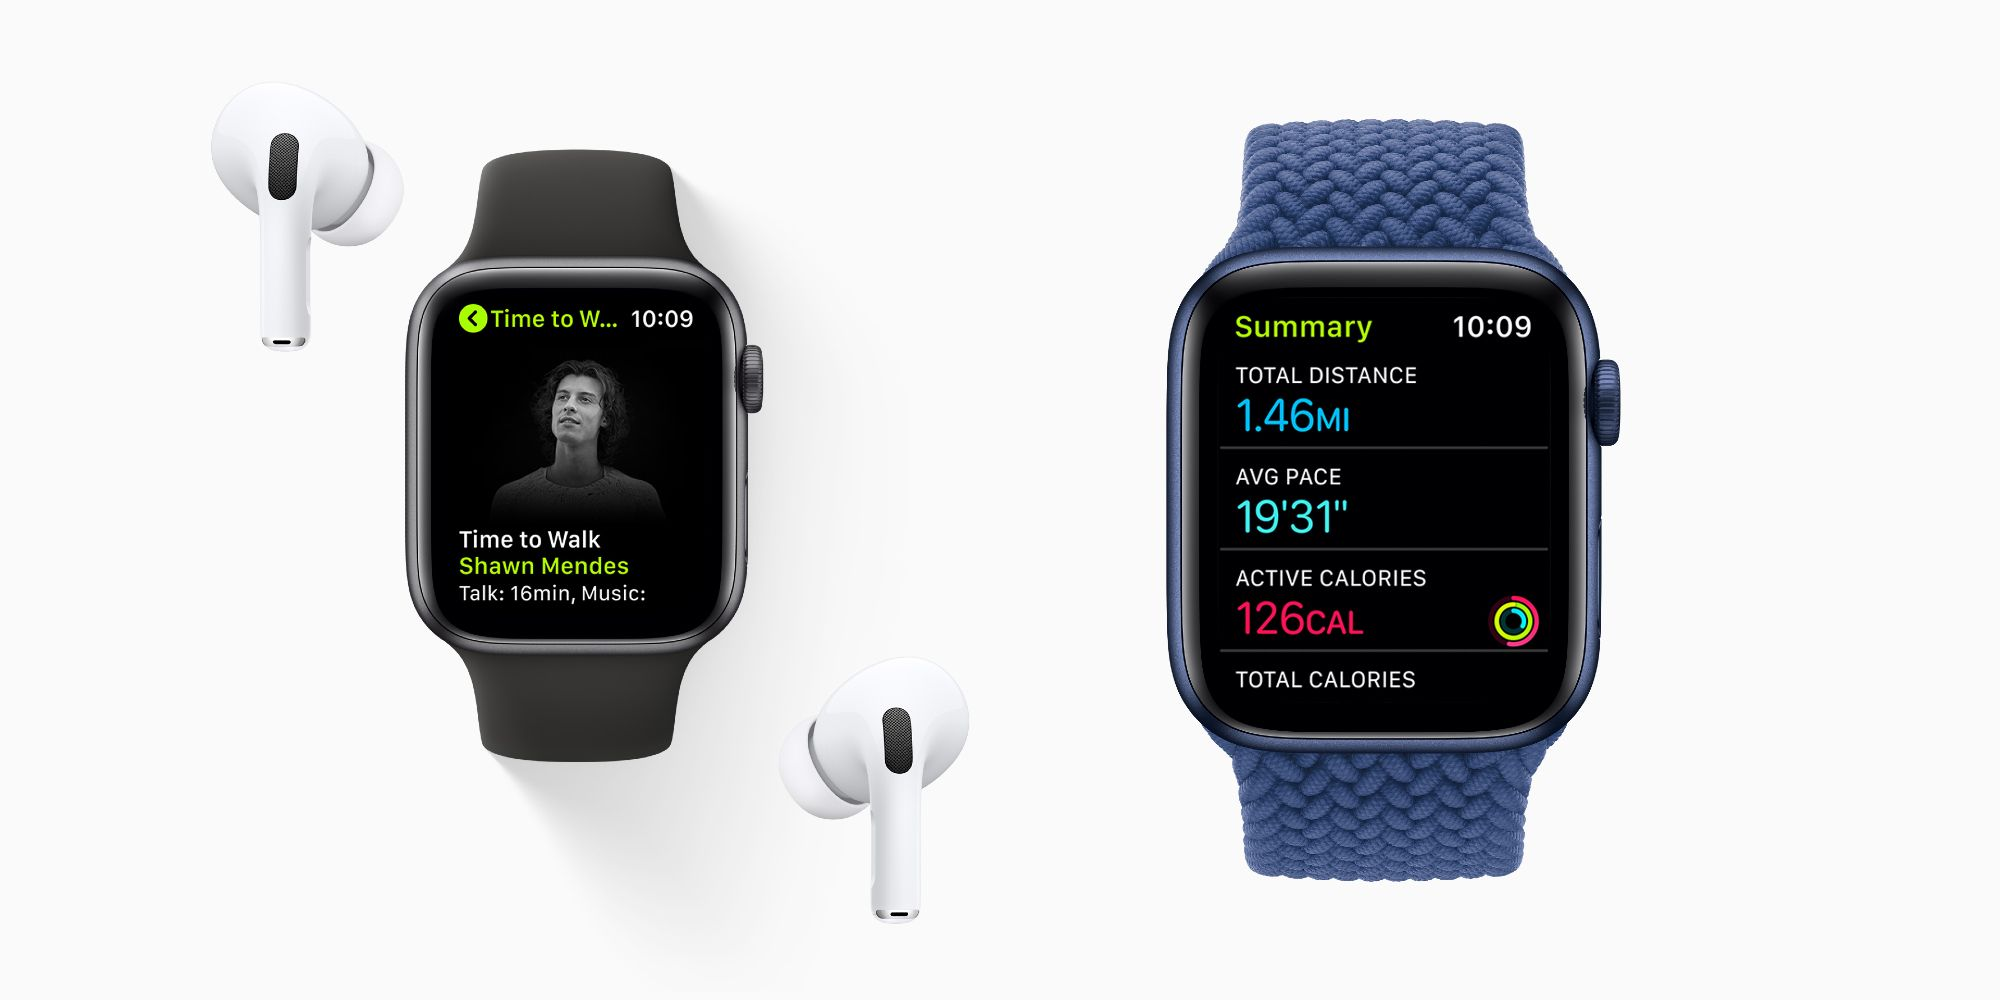 Apple Fitness+: What Is Time To Walk & How Does It Encourage Walking?